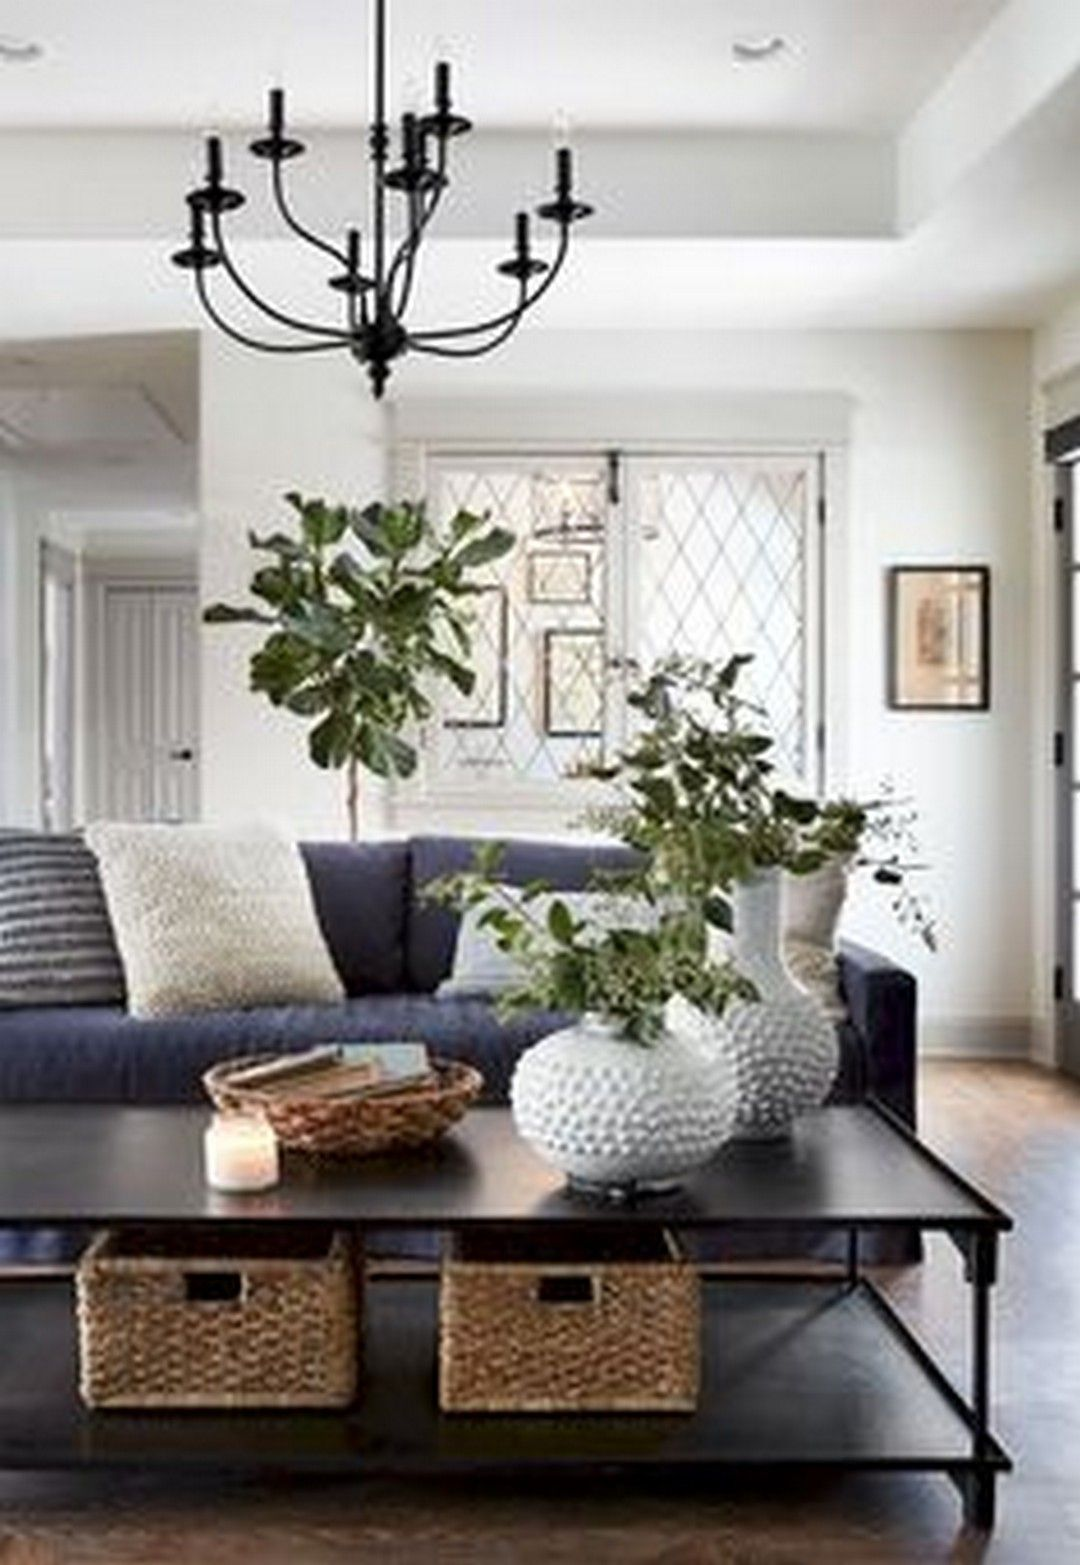 9 great ideas of living room home decors that are easy to generate rh pinterest com